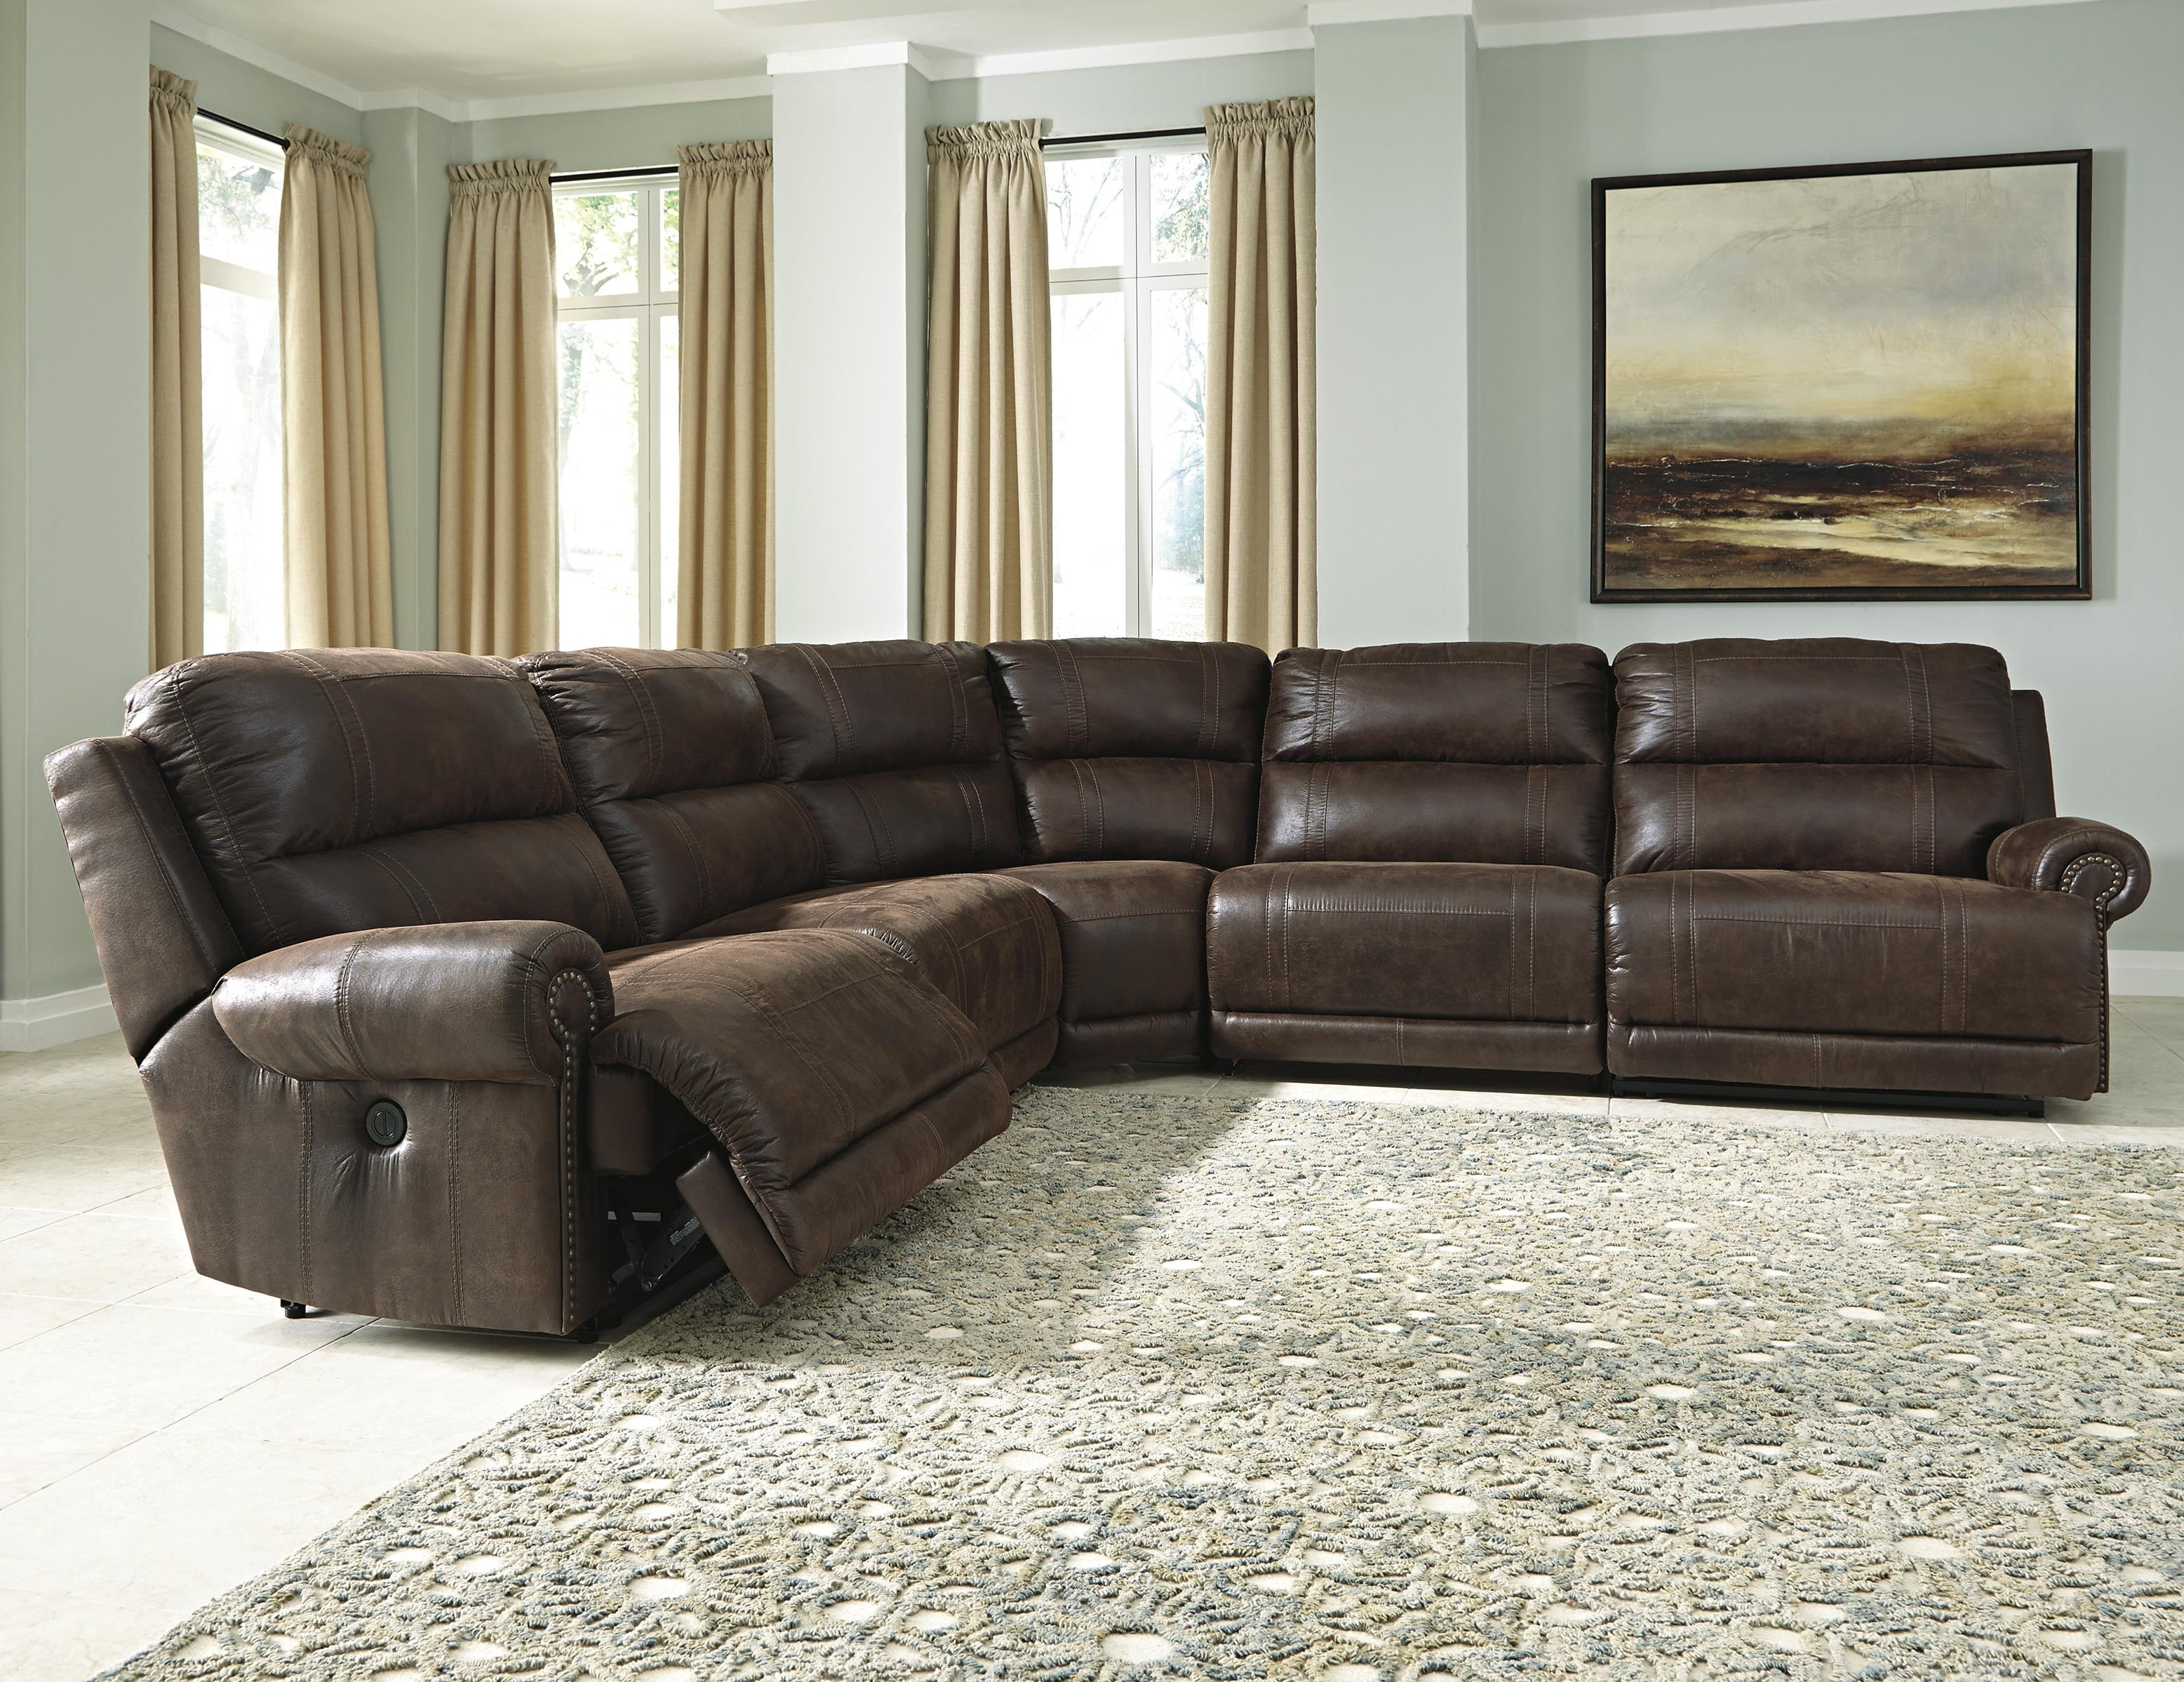 Signature Design by Ashley Luttrell 5-Piece Power Reclining Sectional - Item Number: 9310158+2x19+77+62